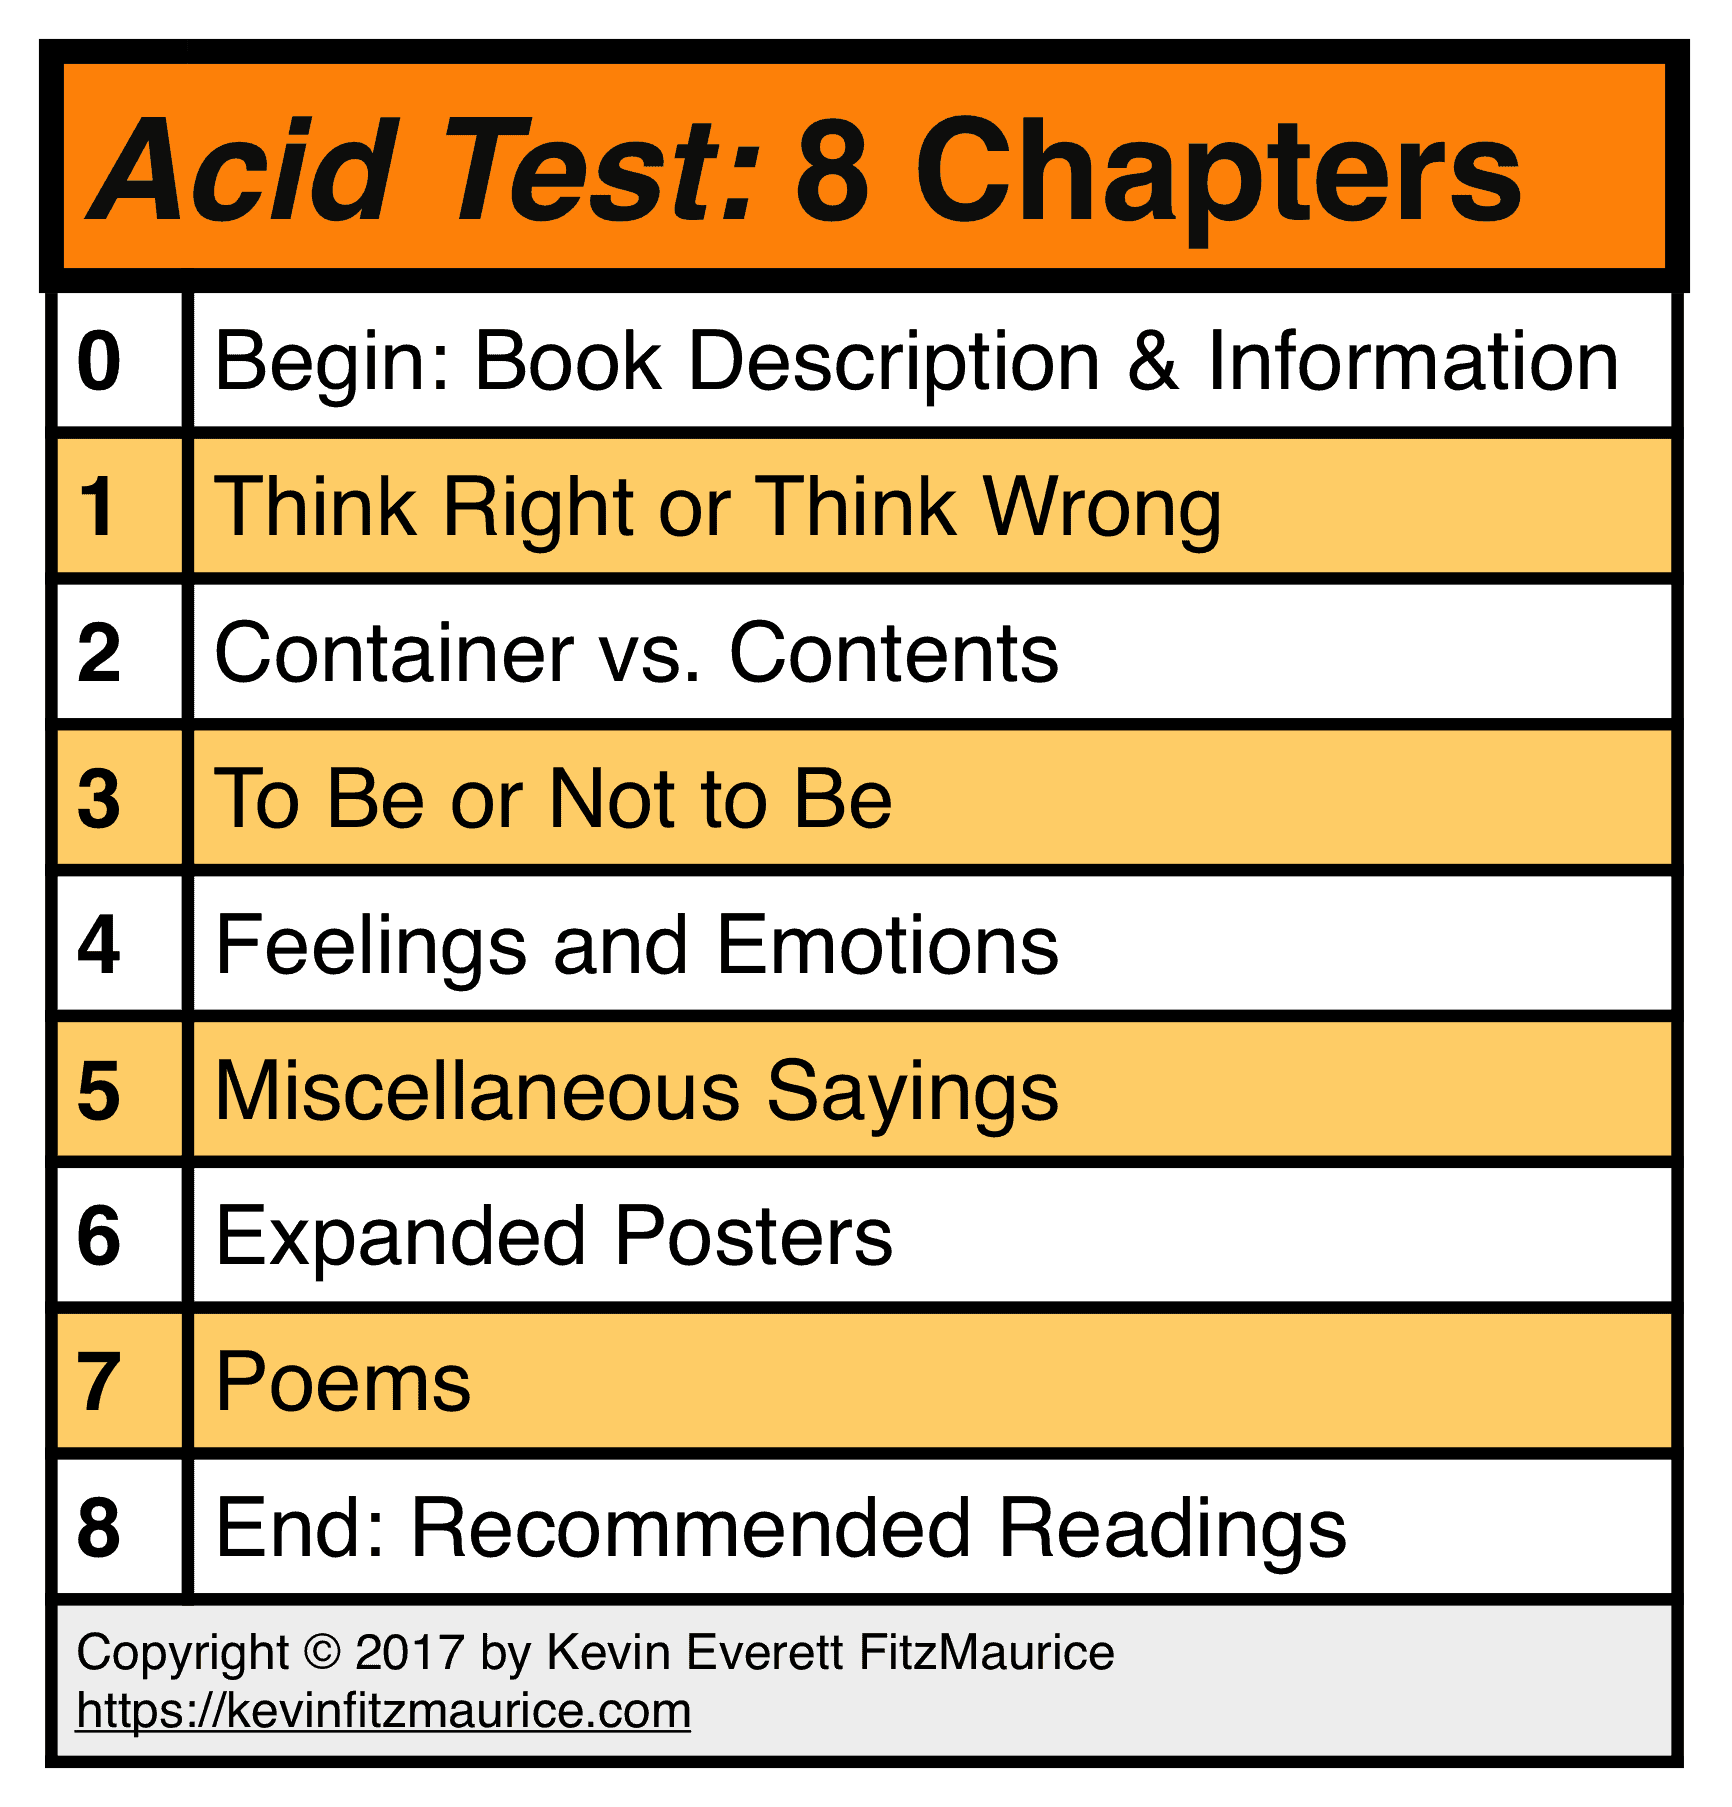 ACID TEST 8 Chapters